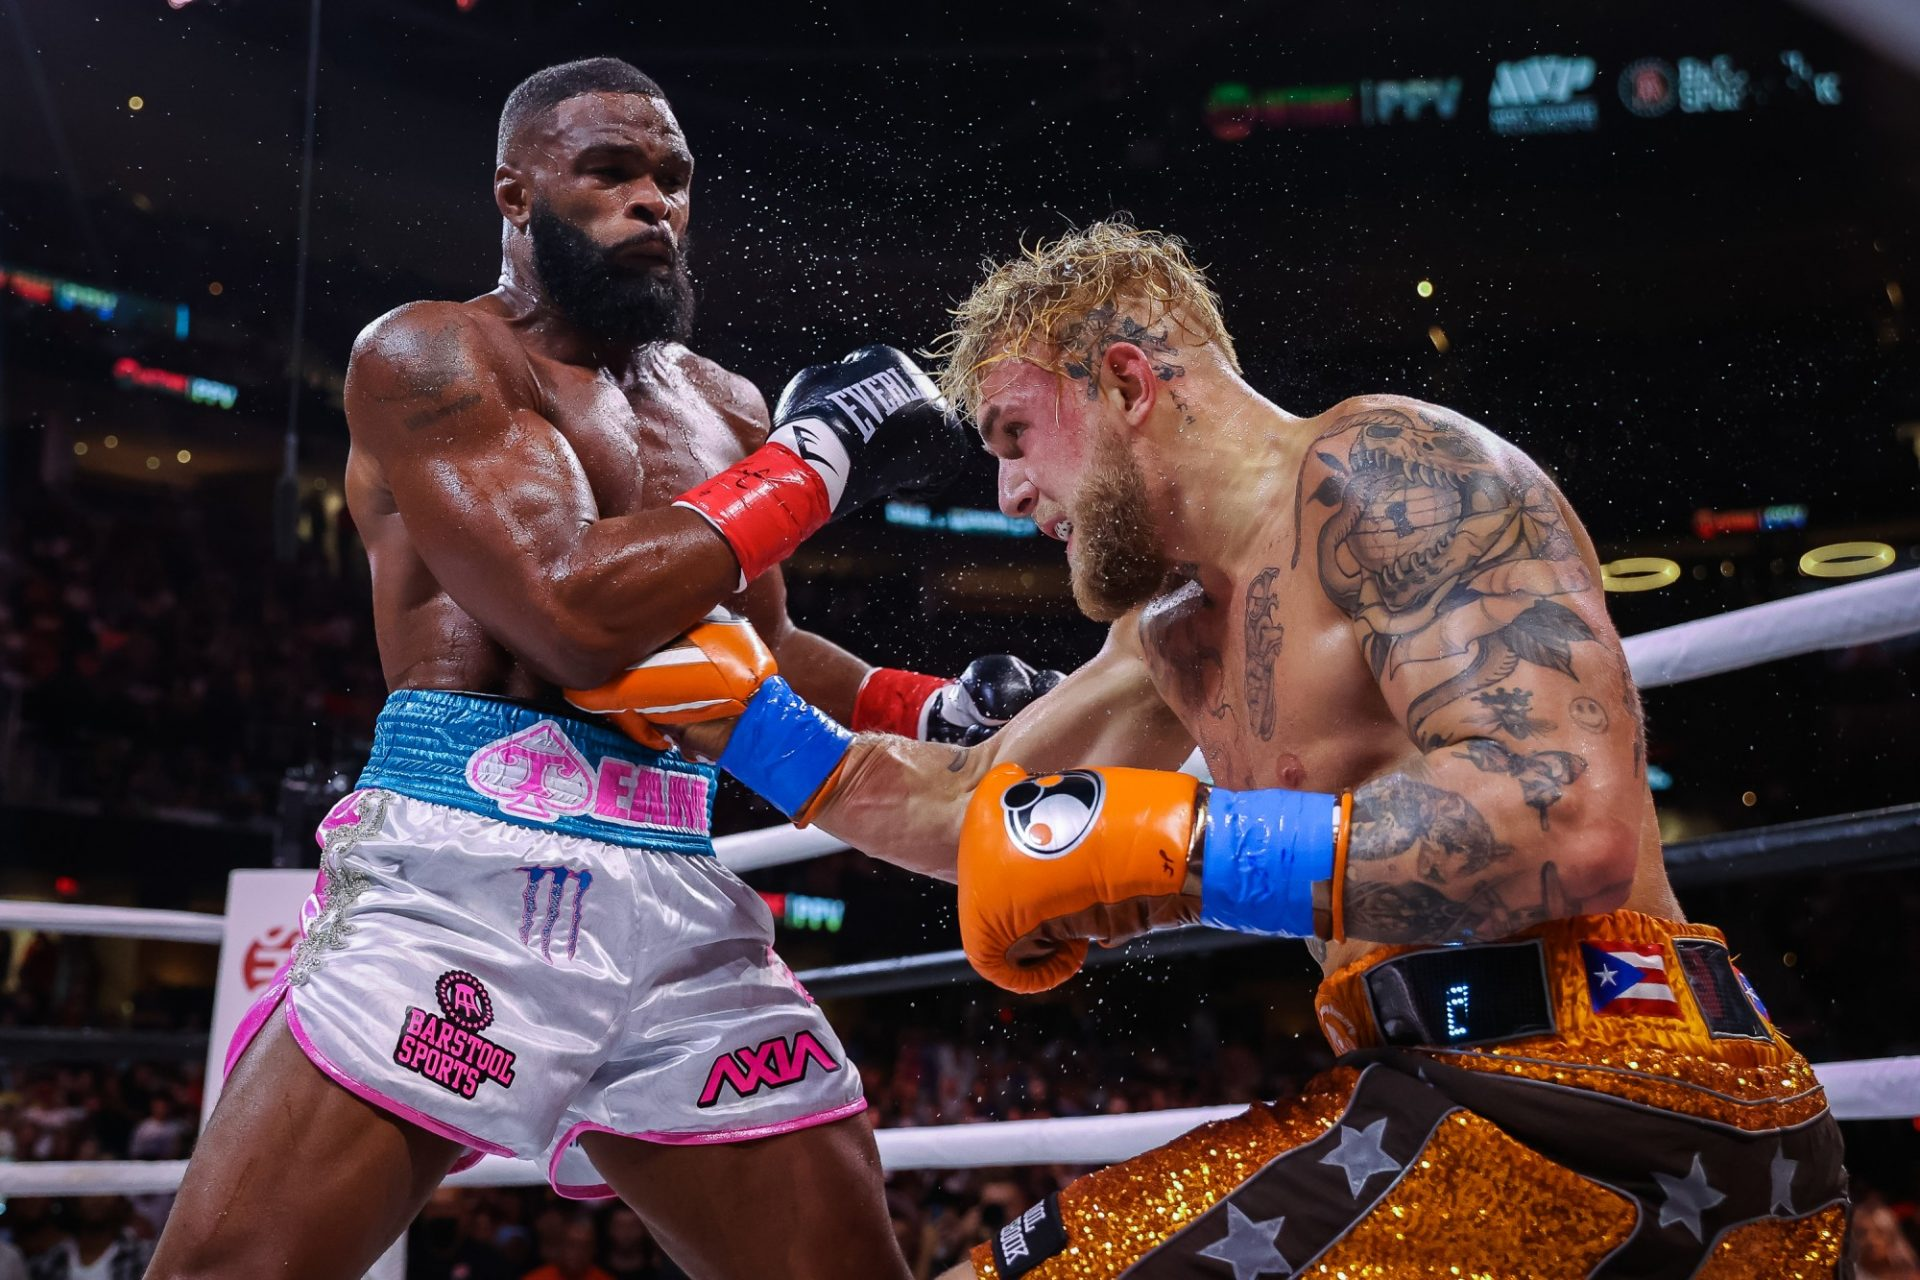 Jake Paul vs Tyron Woodley fight sold an estimated 480,000-500,000 pay-per-view buys - paul